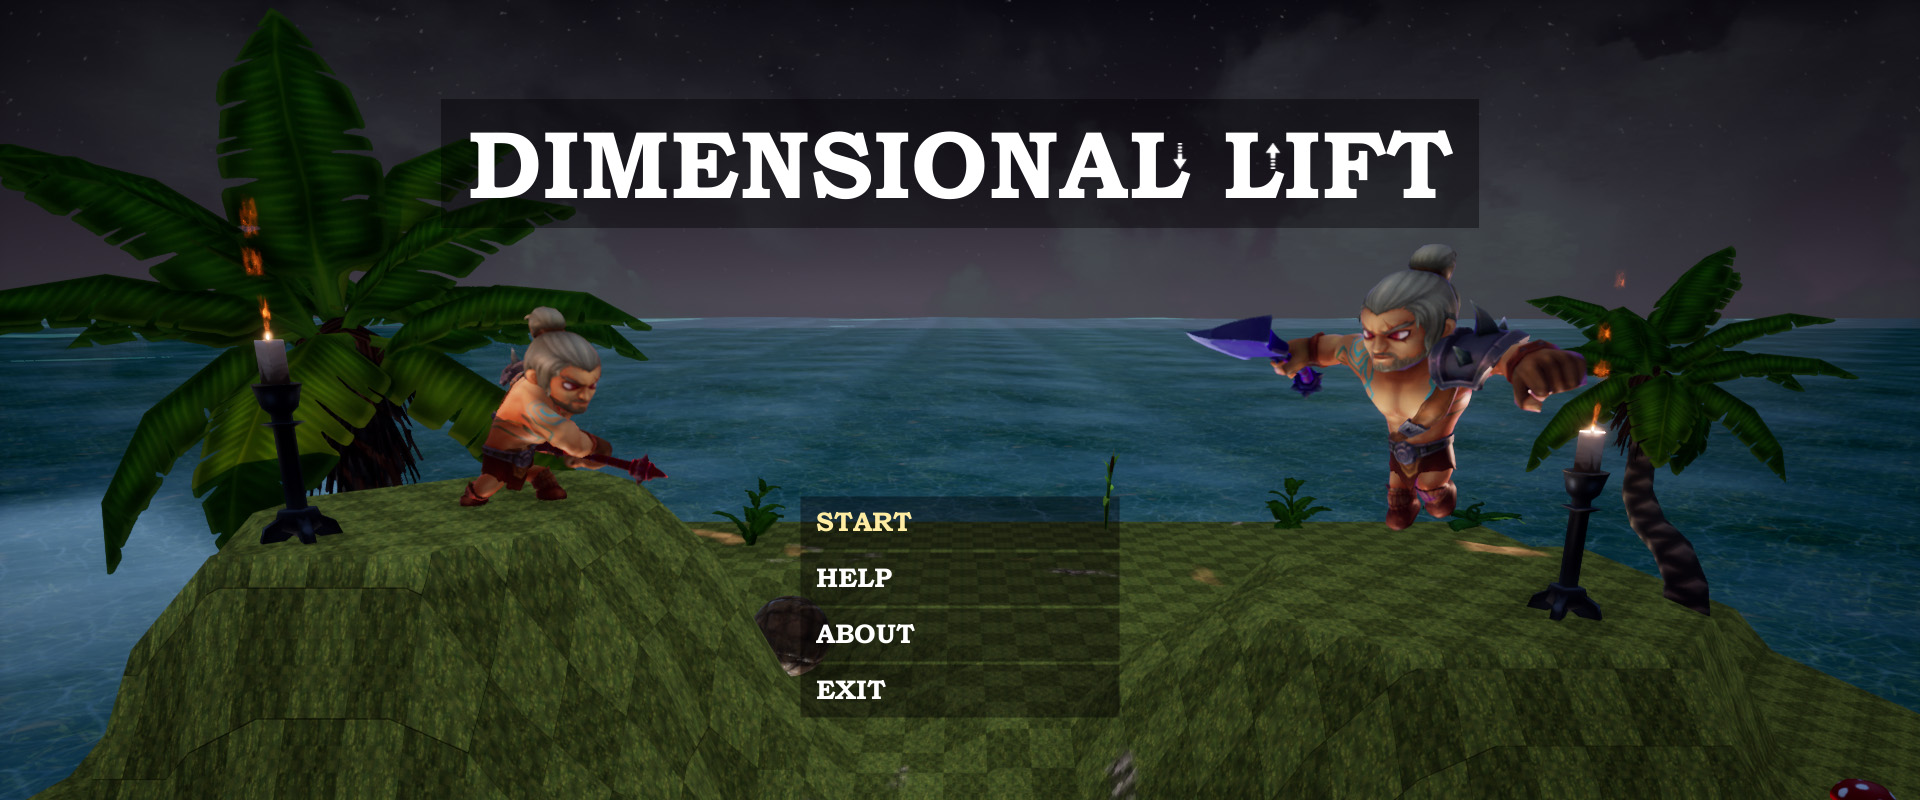 GameJam November – Dimensional Lift